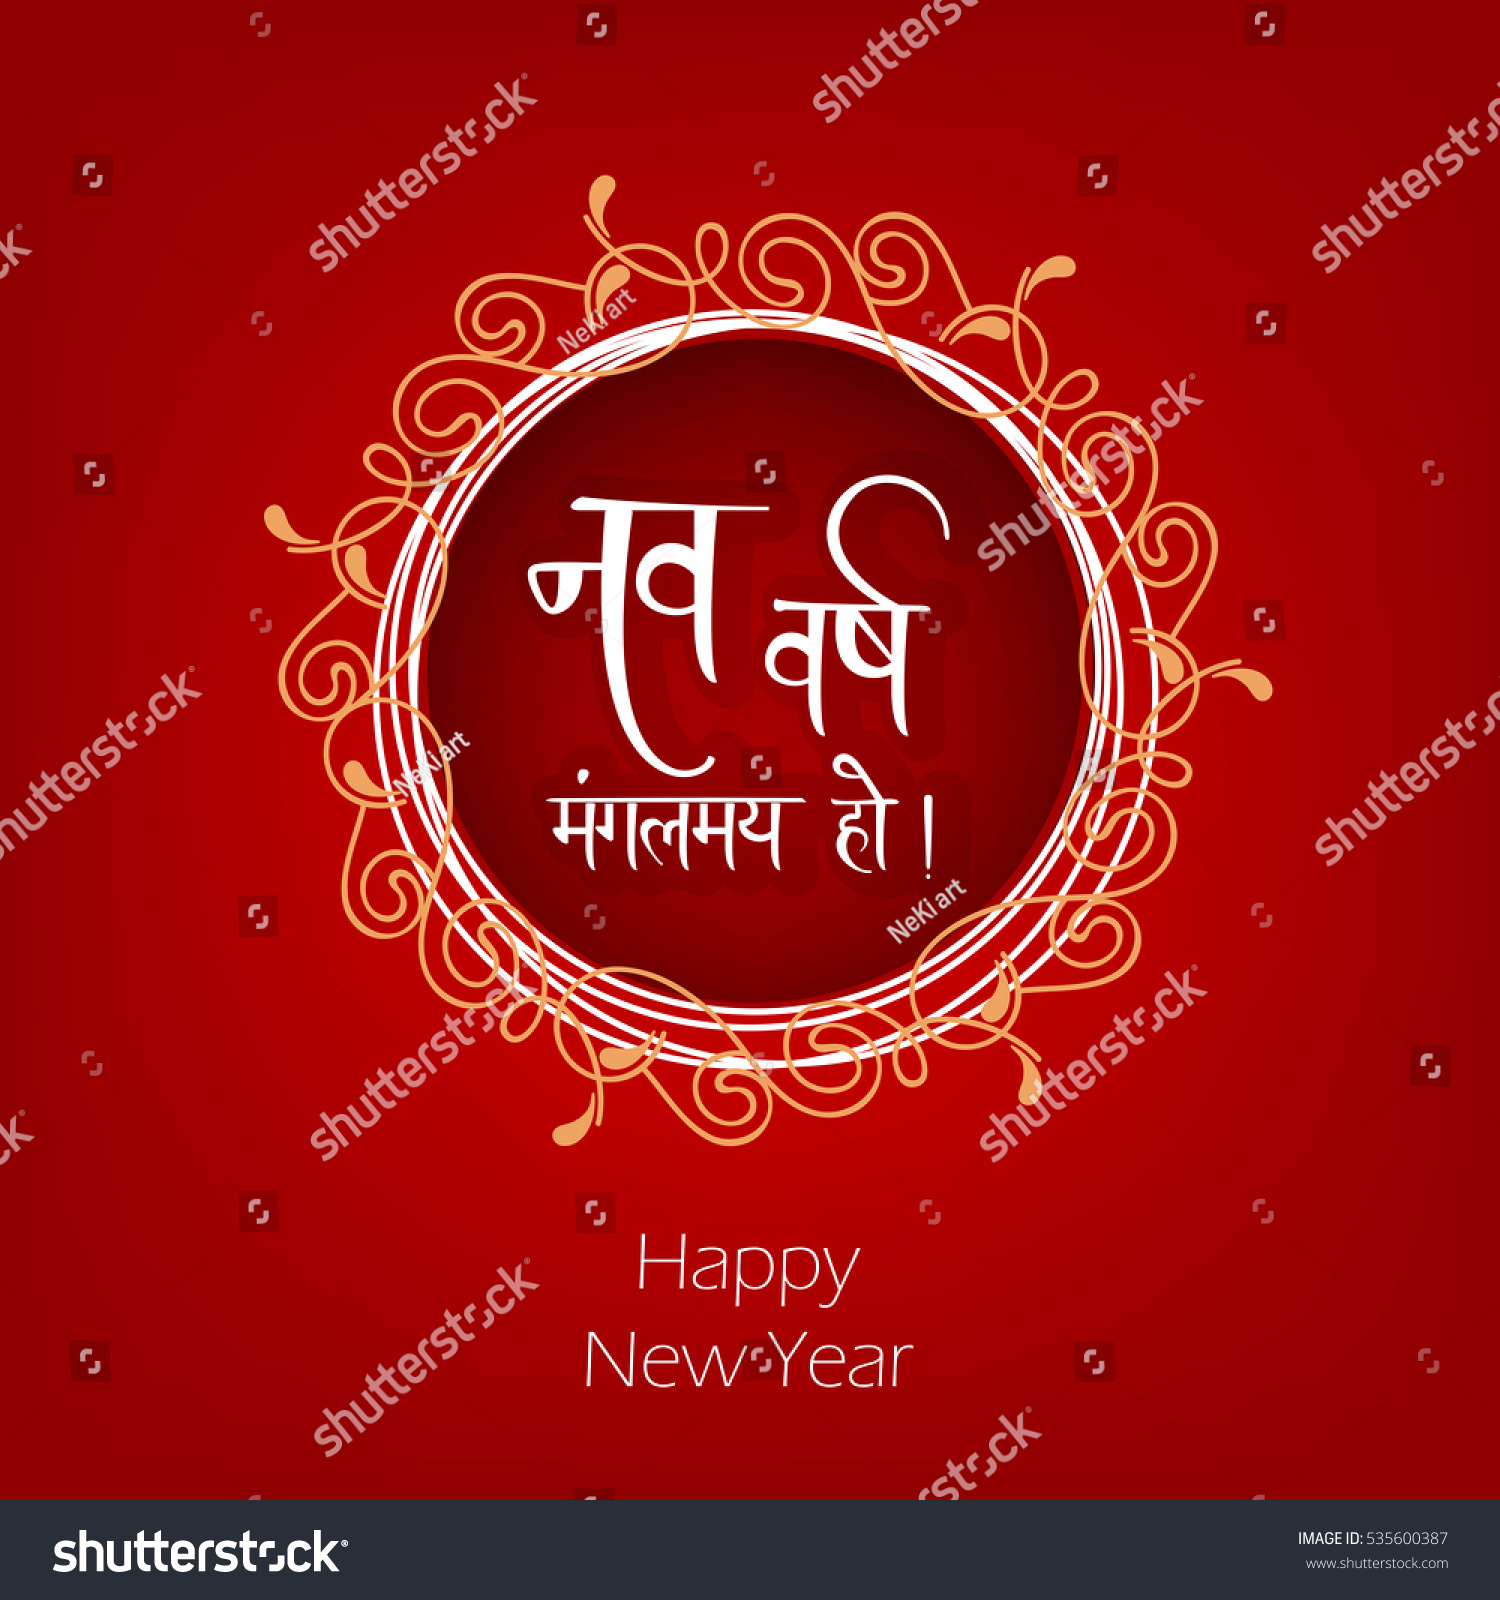 vector illustration of happy new year 2017 greeting card wishes contains creative decorated round floral frame